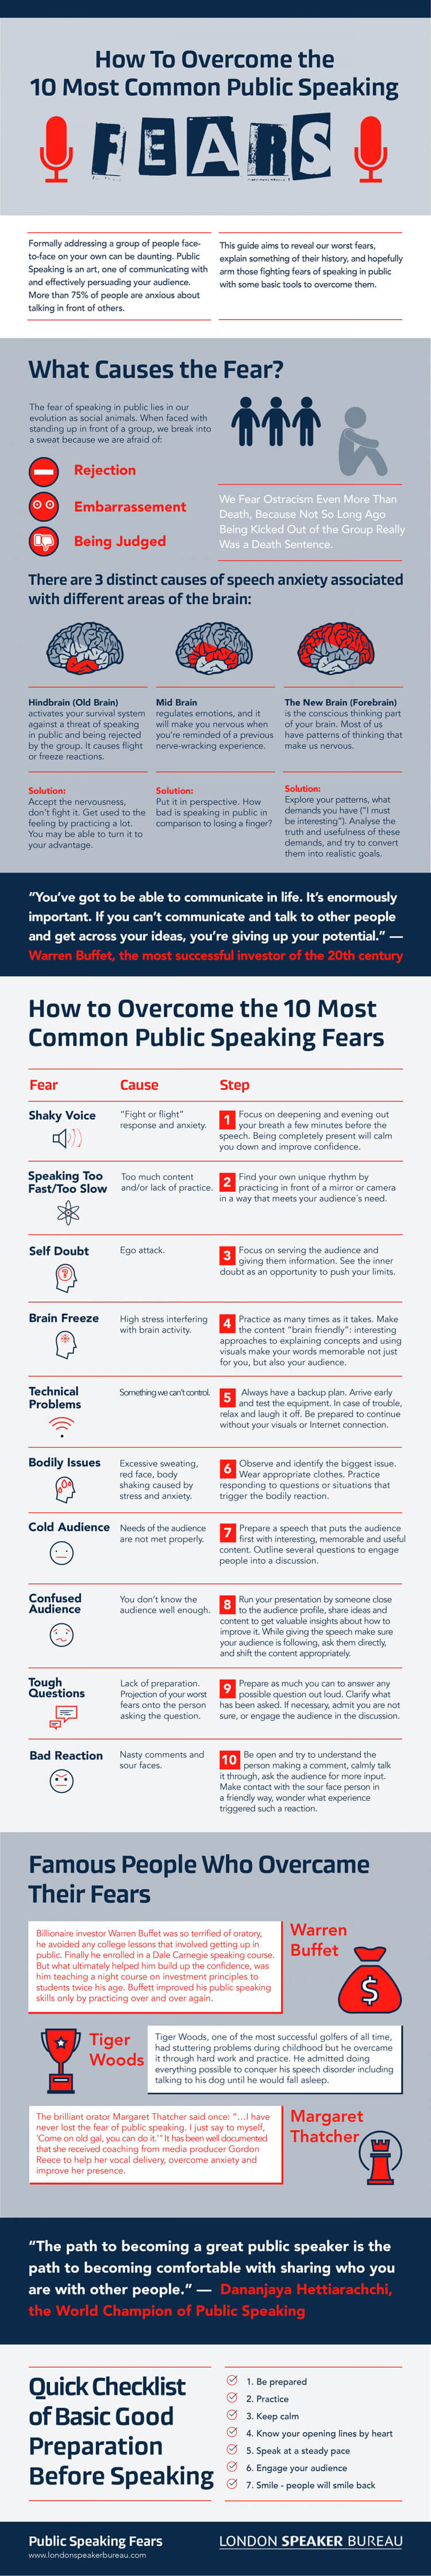 how-to-overcome-the-10-most-common-public-speaking-fears-infographic